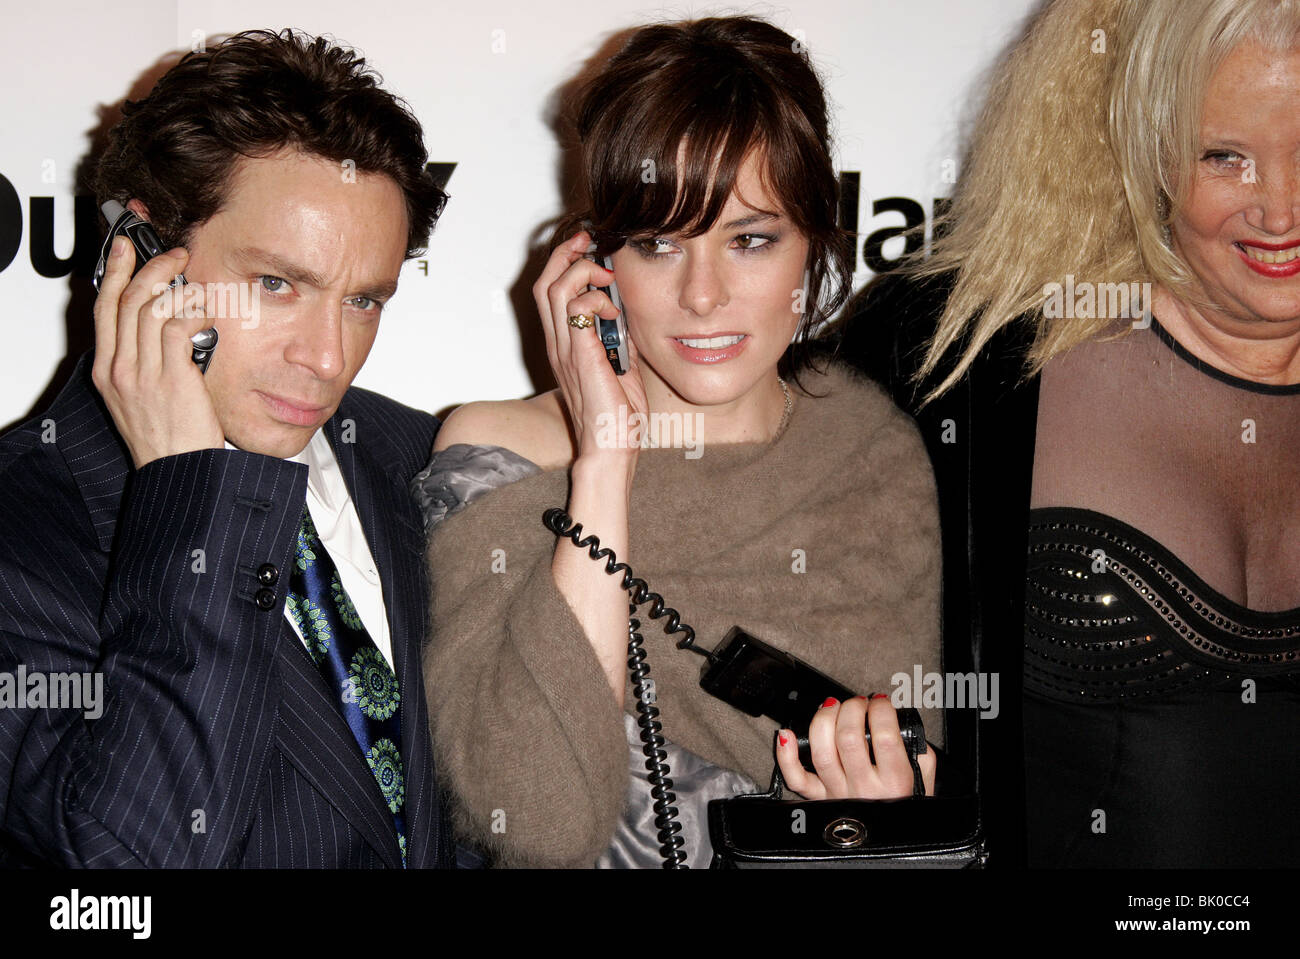 CHRIS KATTAN & PARKER POSEY ADAM & STEVE PREMIERE ARCLIGHT HOLLYWOOD LOS ANGELES USA 22 March 2006 - Stock Image